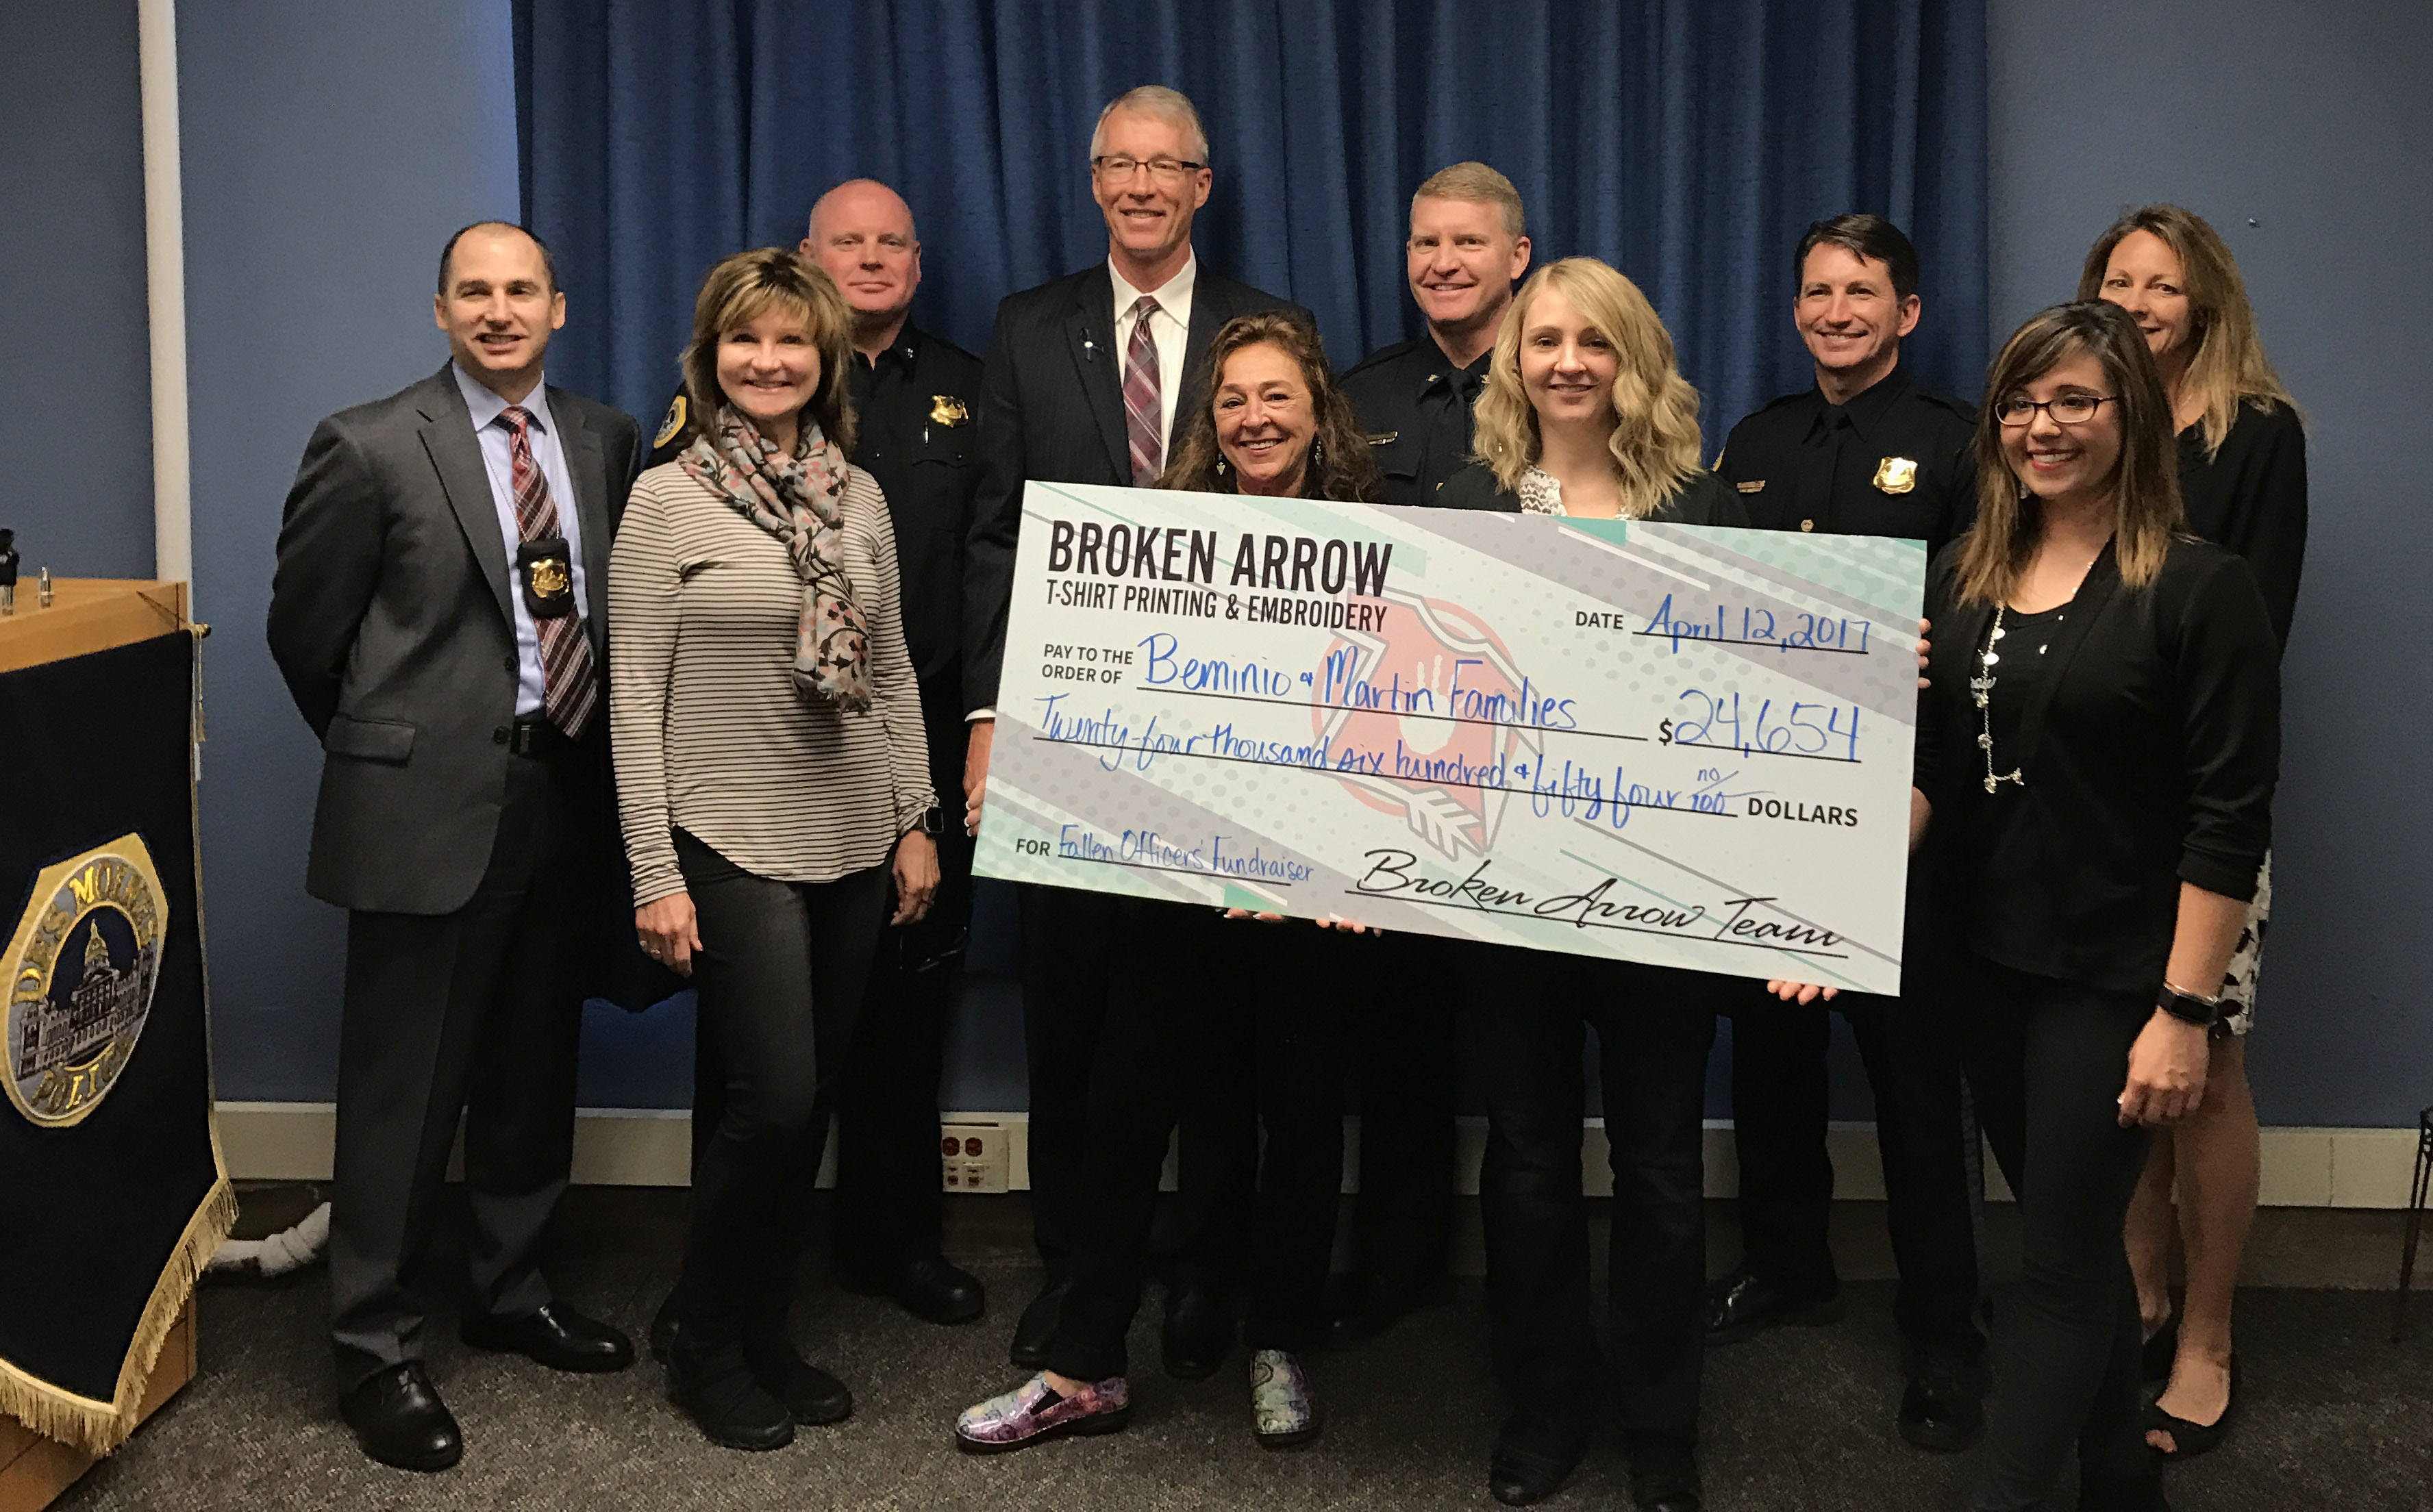 Broken Arrow Donates $24,000 through T-shirt Fundraiser!